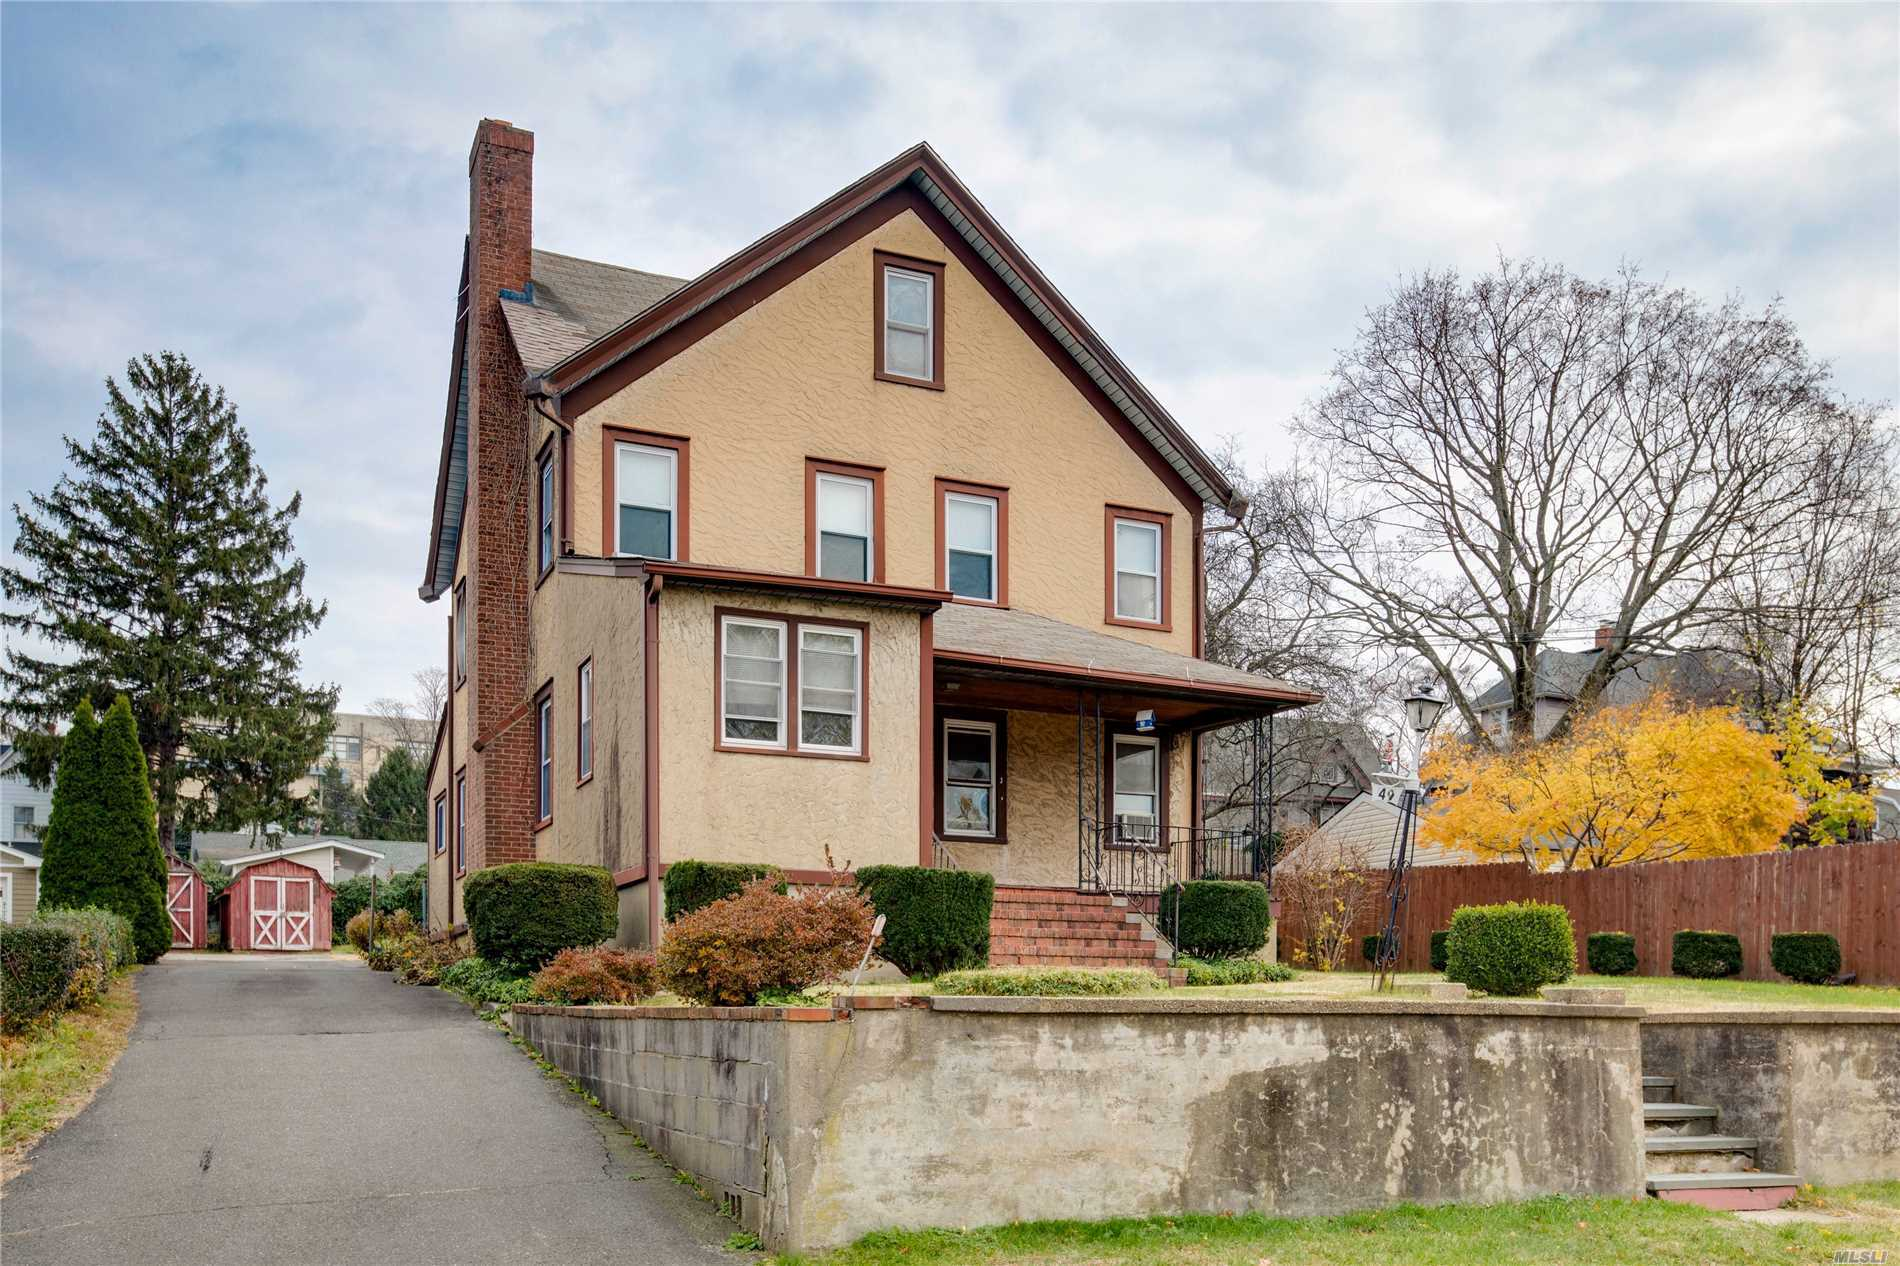 2-Family Home In The Heart Of Oyster Bay. 5 Bedrooms, 2 Full Baths. Full Basement With Outside Entrance. Large Yard. Great Potential